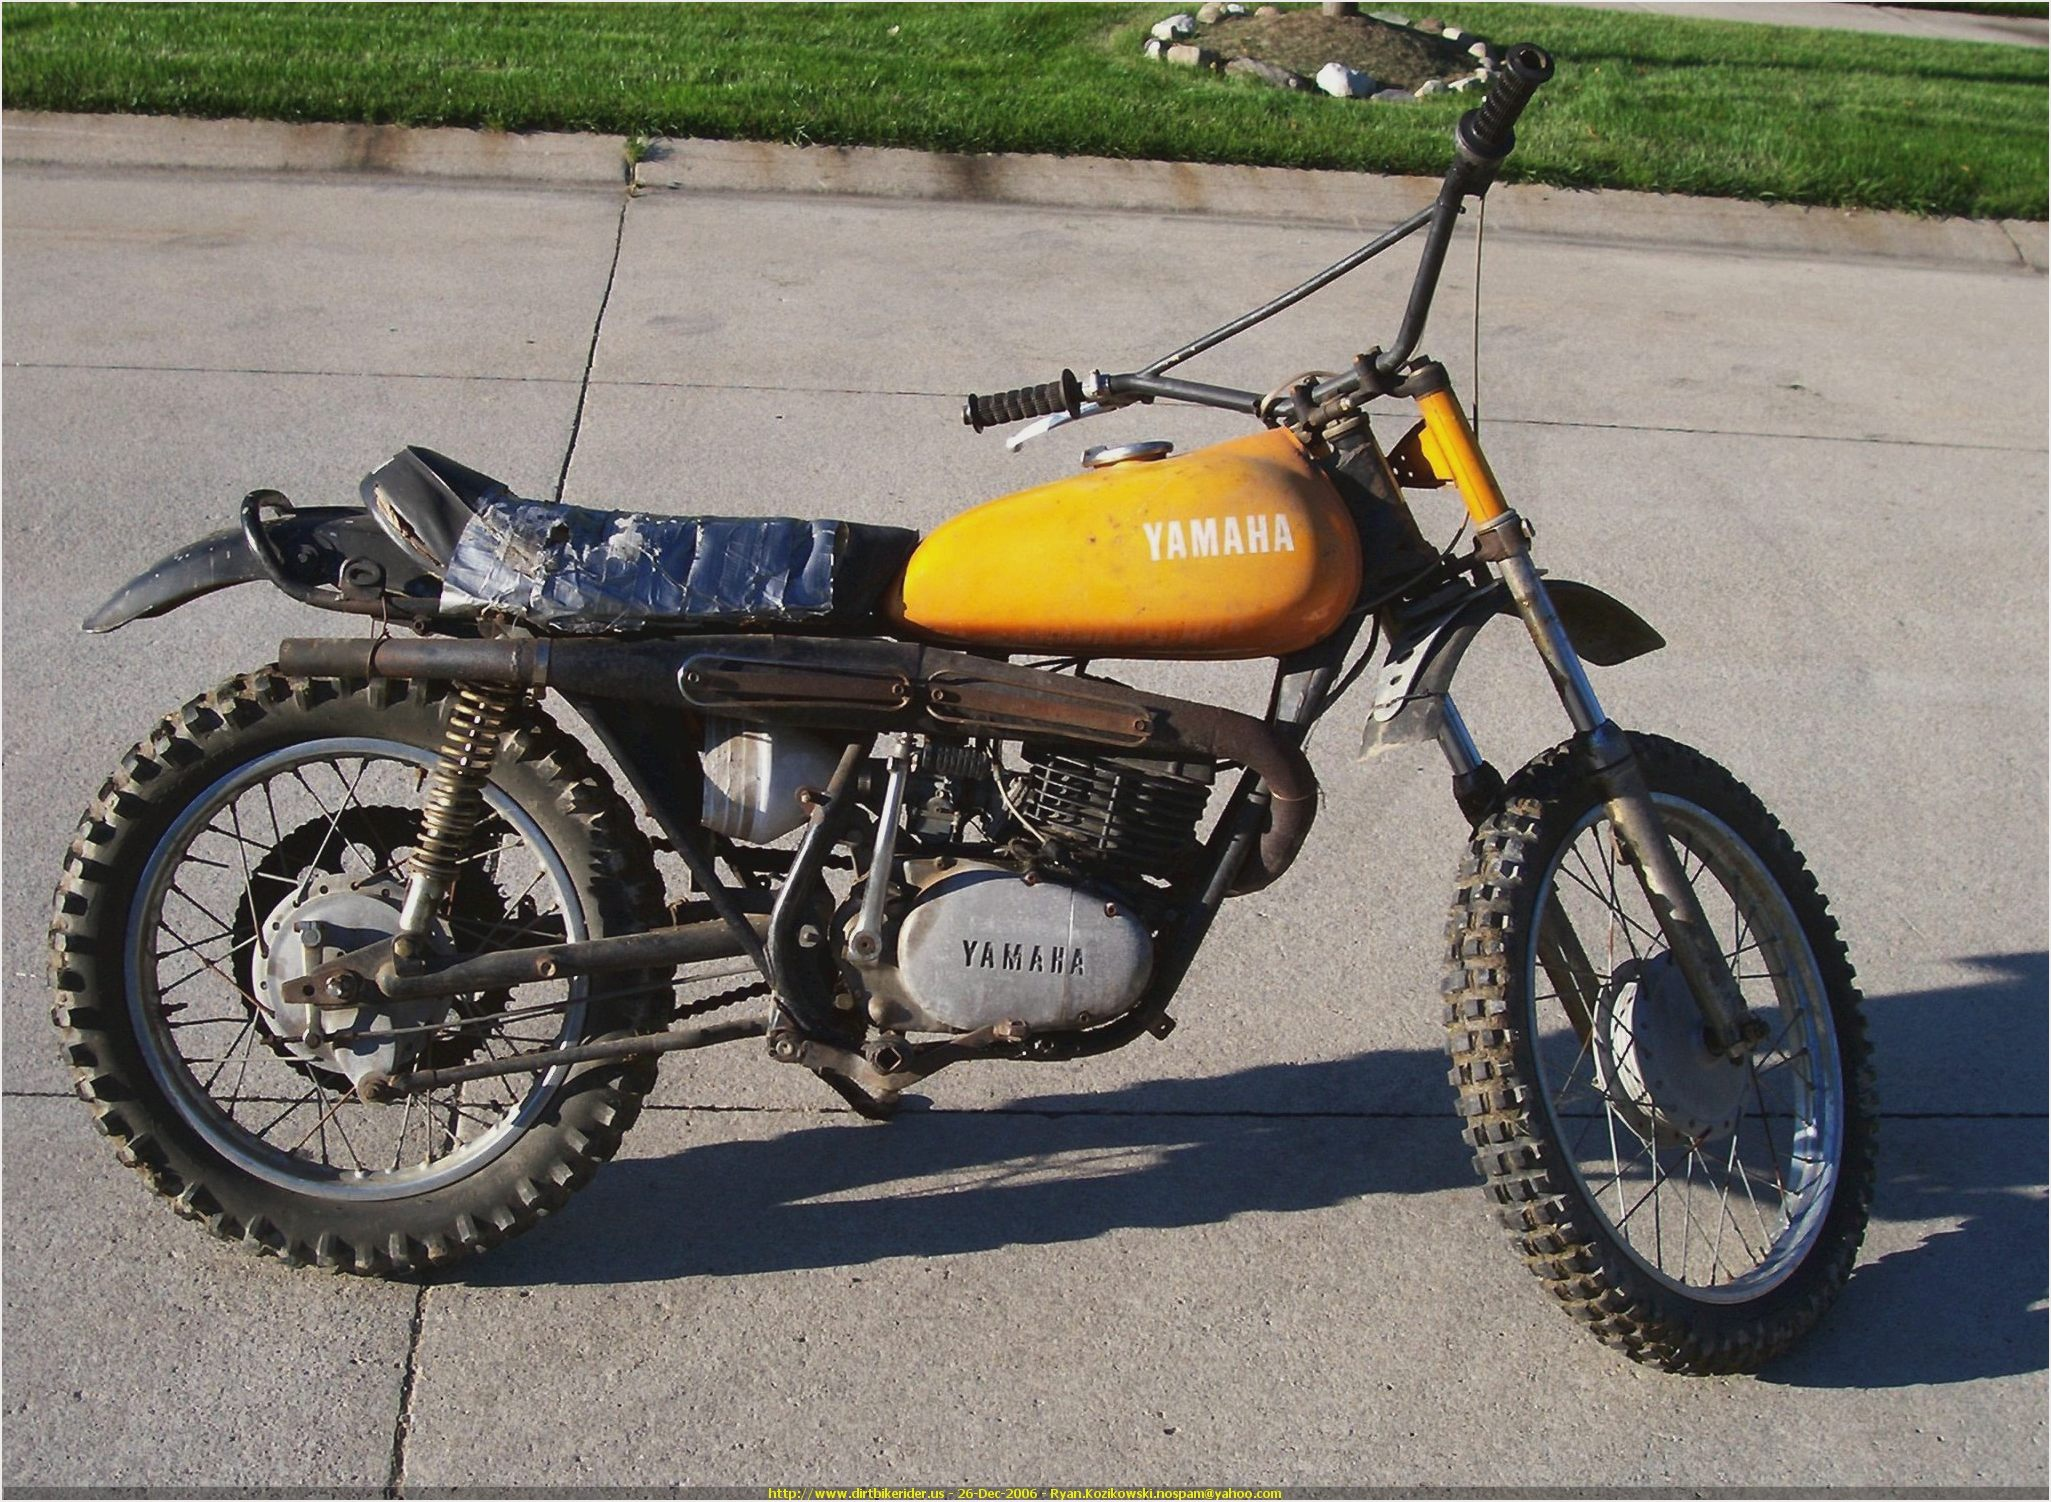 Yamaha DT 250 1973 images #90005